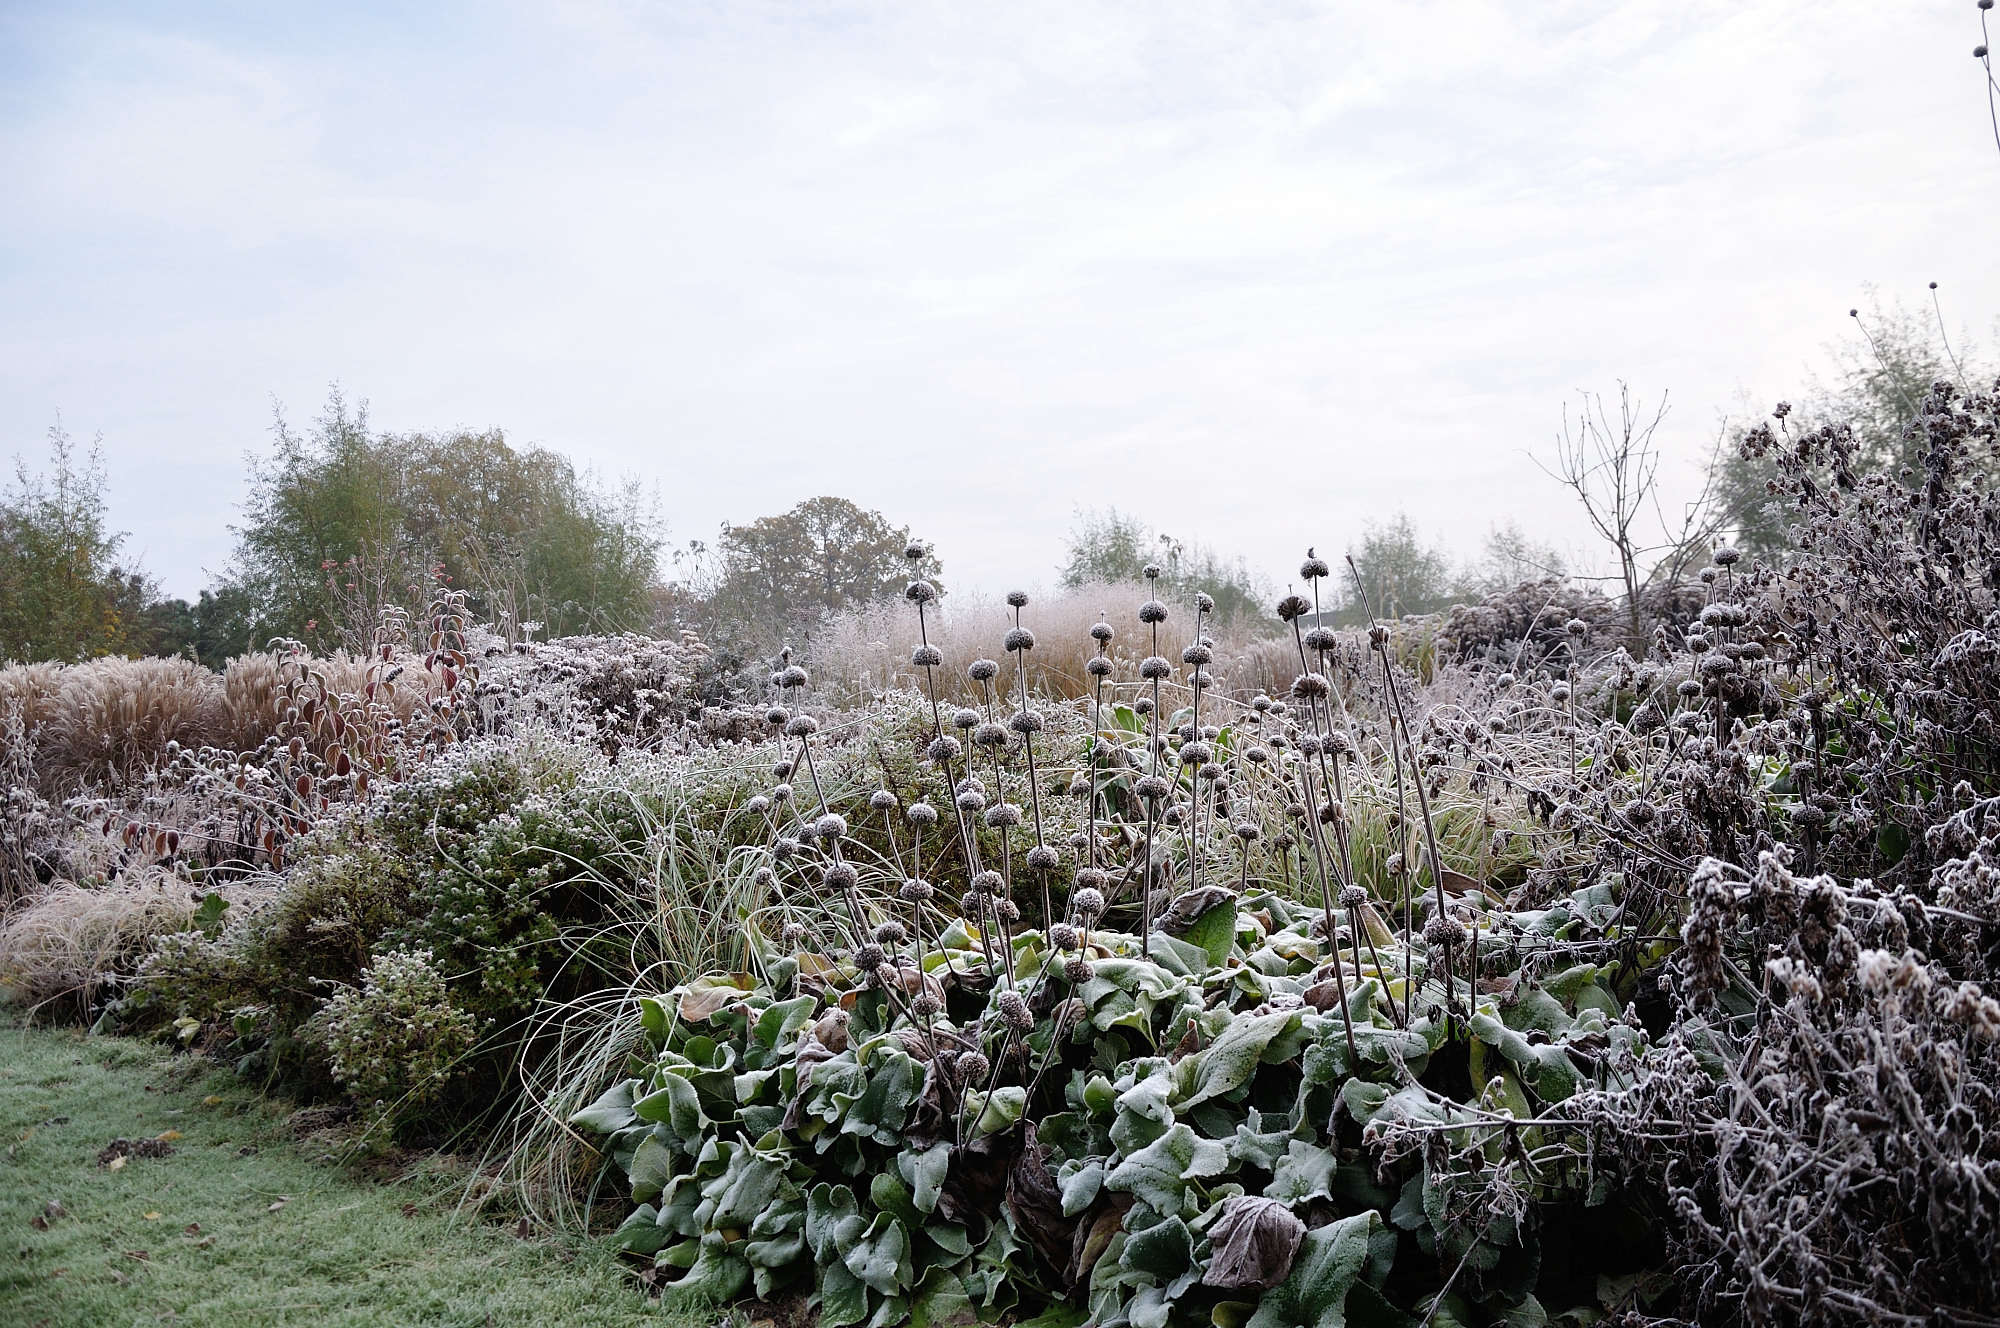 A similar border garden in winter, when the regal heads of Phlomis take on a silver sheen.